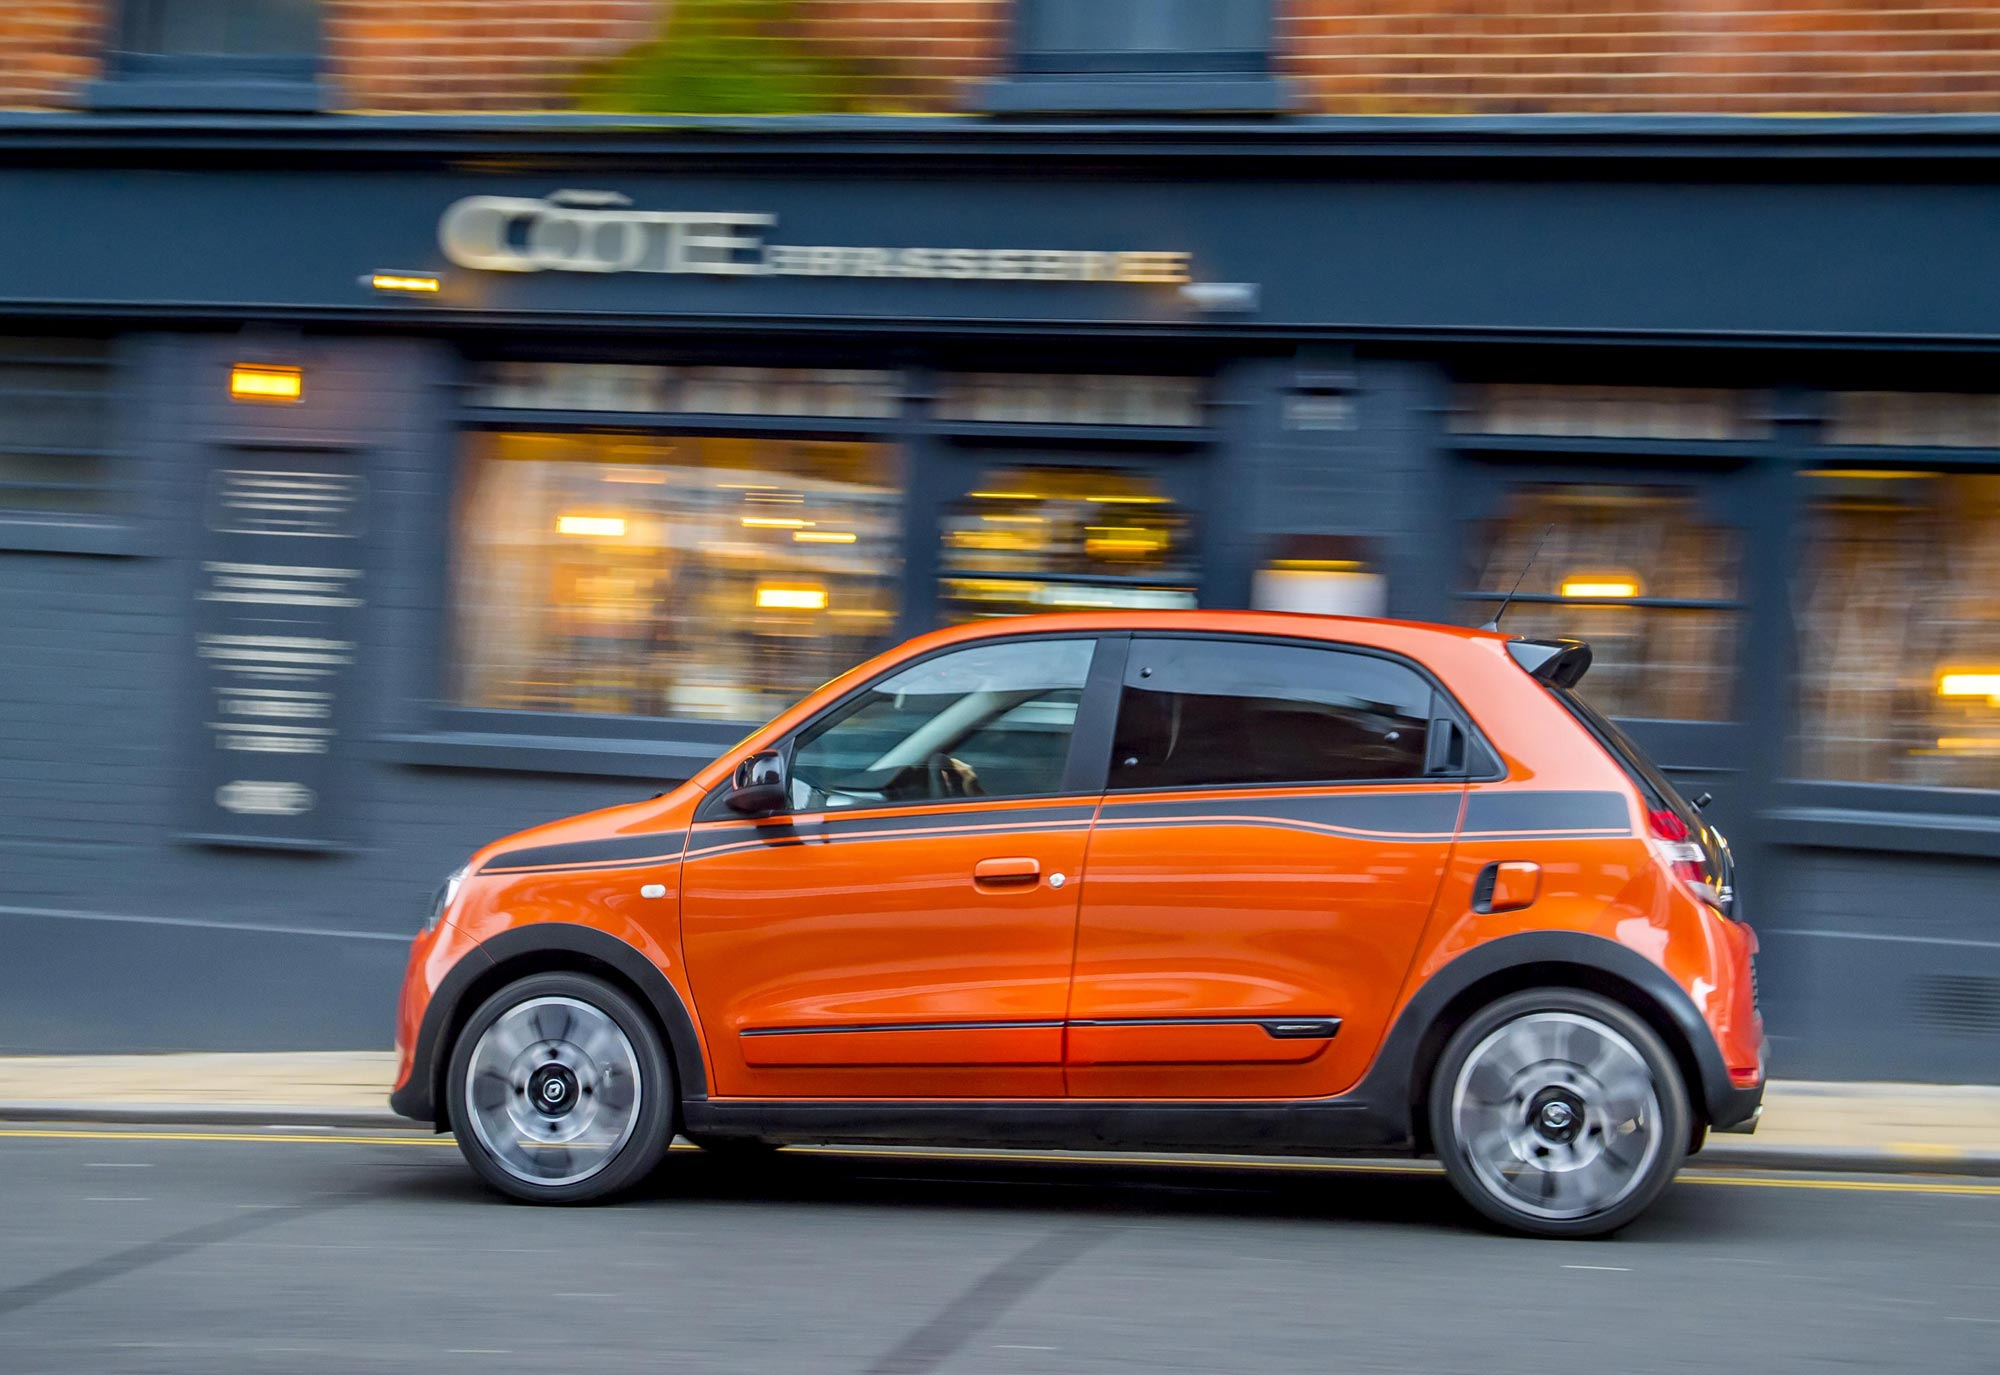 Renault_Twingo_GT_-_UK_-_Dec_2016_(48).JPG